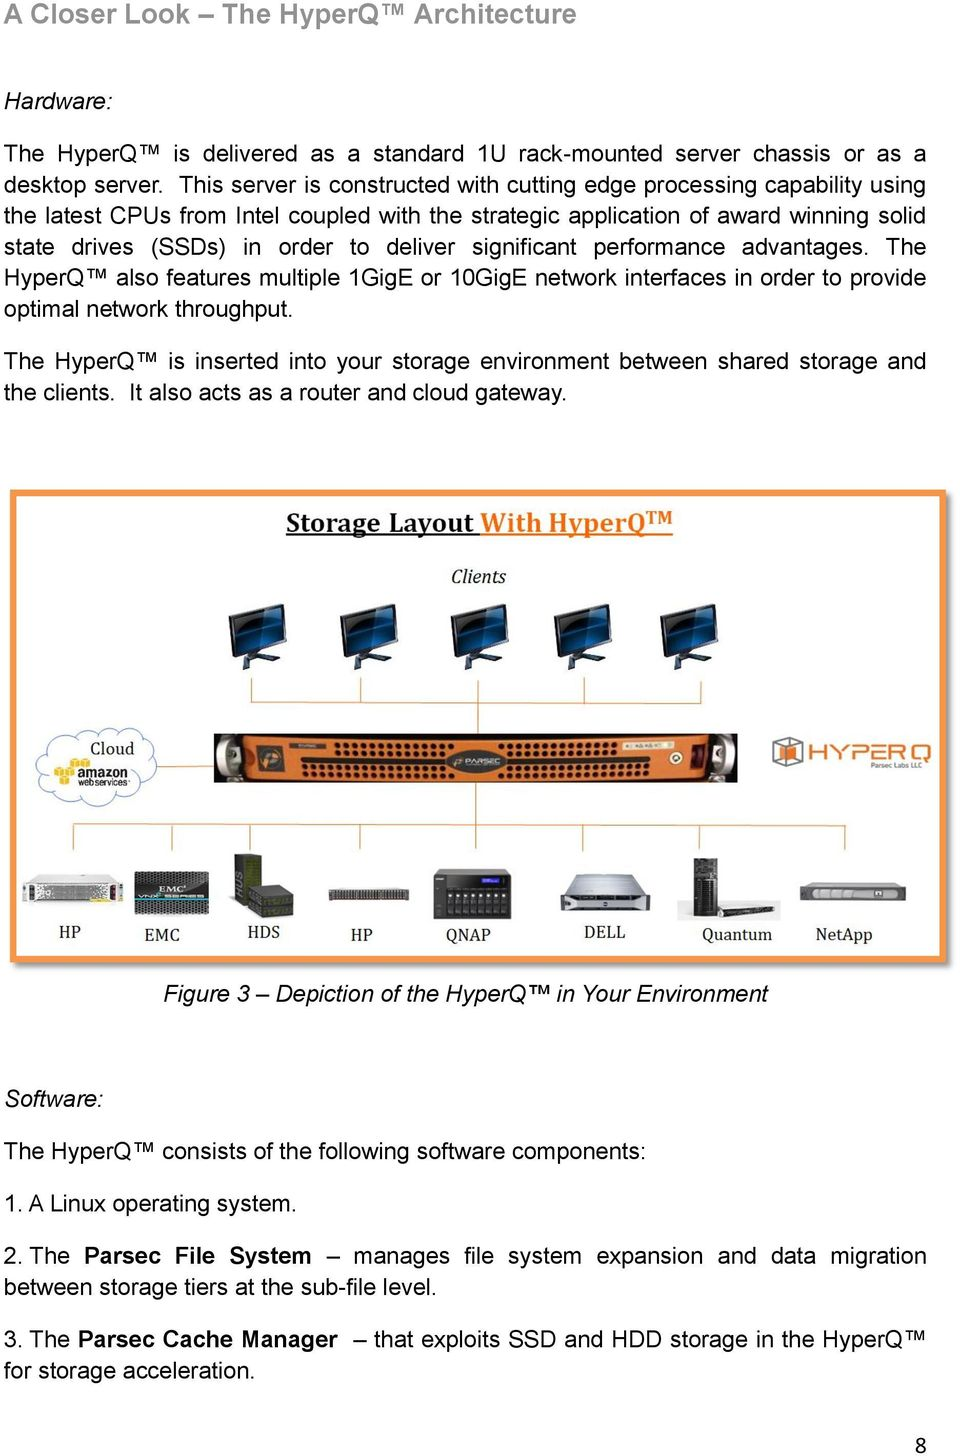 deliver significant performance advantages. The HyperQ also features multiple 1GigE or 10GigE network interfaces in order to provide optimal network throughput.